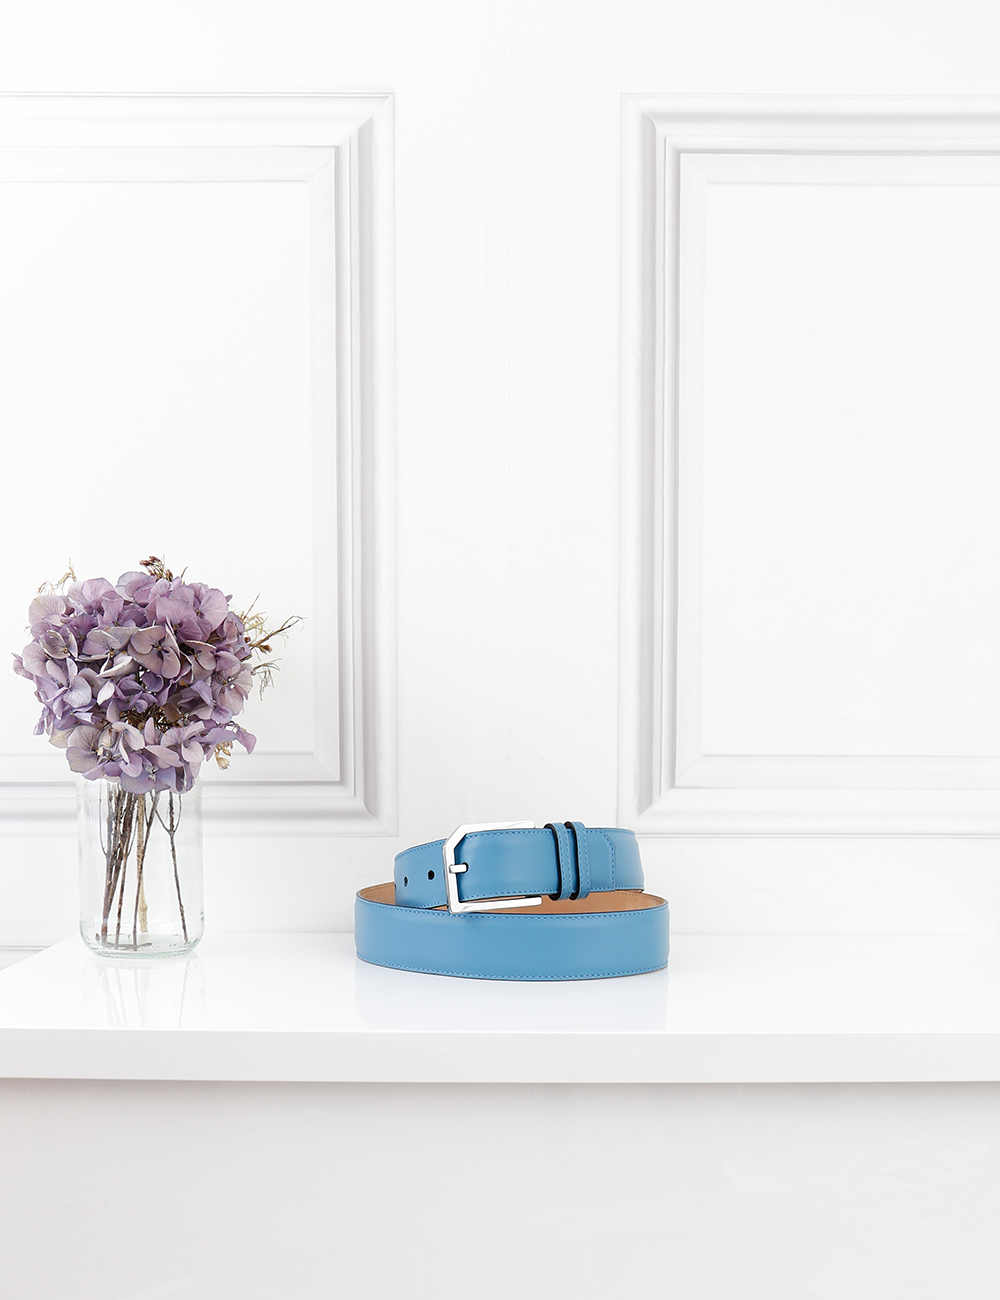 JIMMY CHOO ACCESSORIES Leather belt